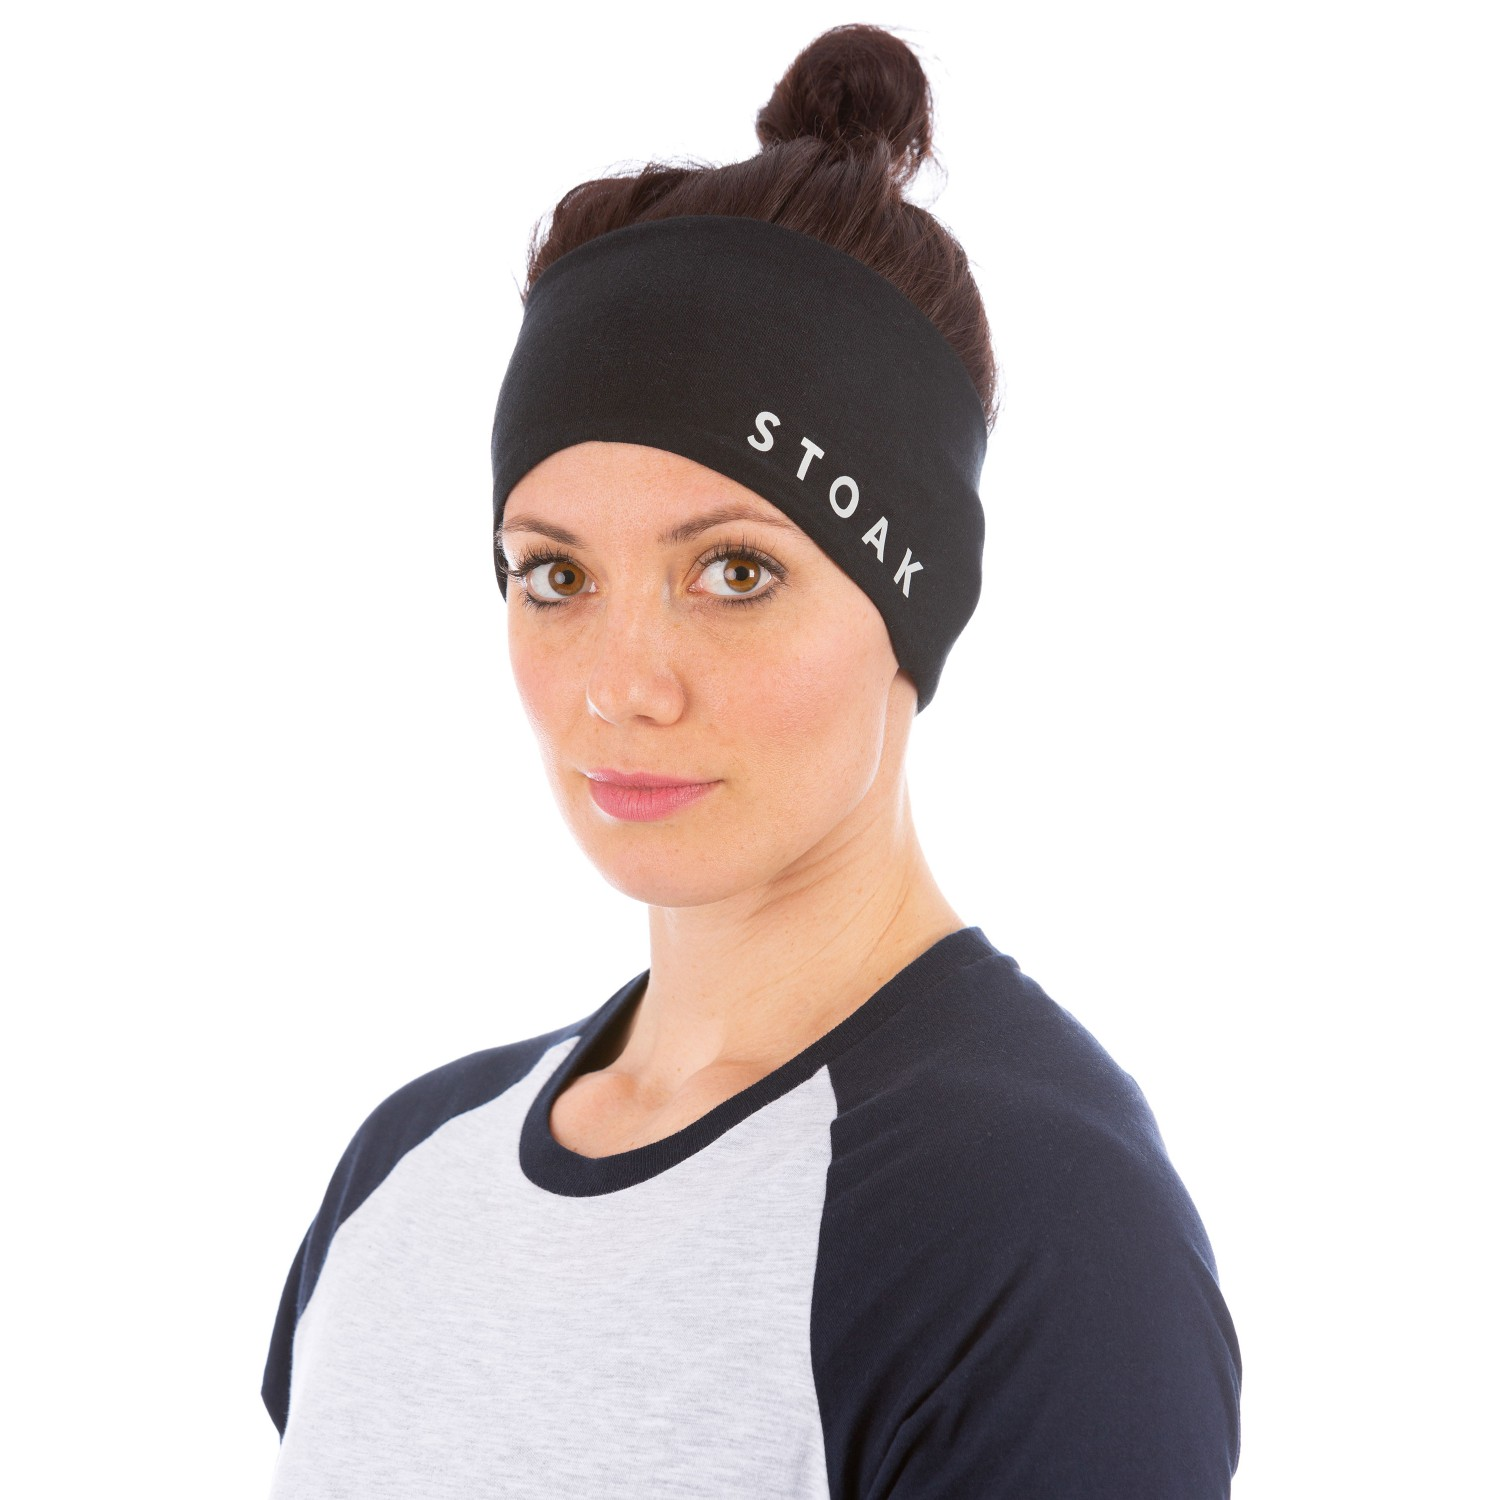 STOAK CARBON Headband | MADE IN AUSTRIA